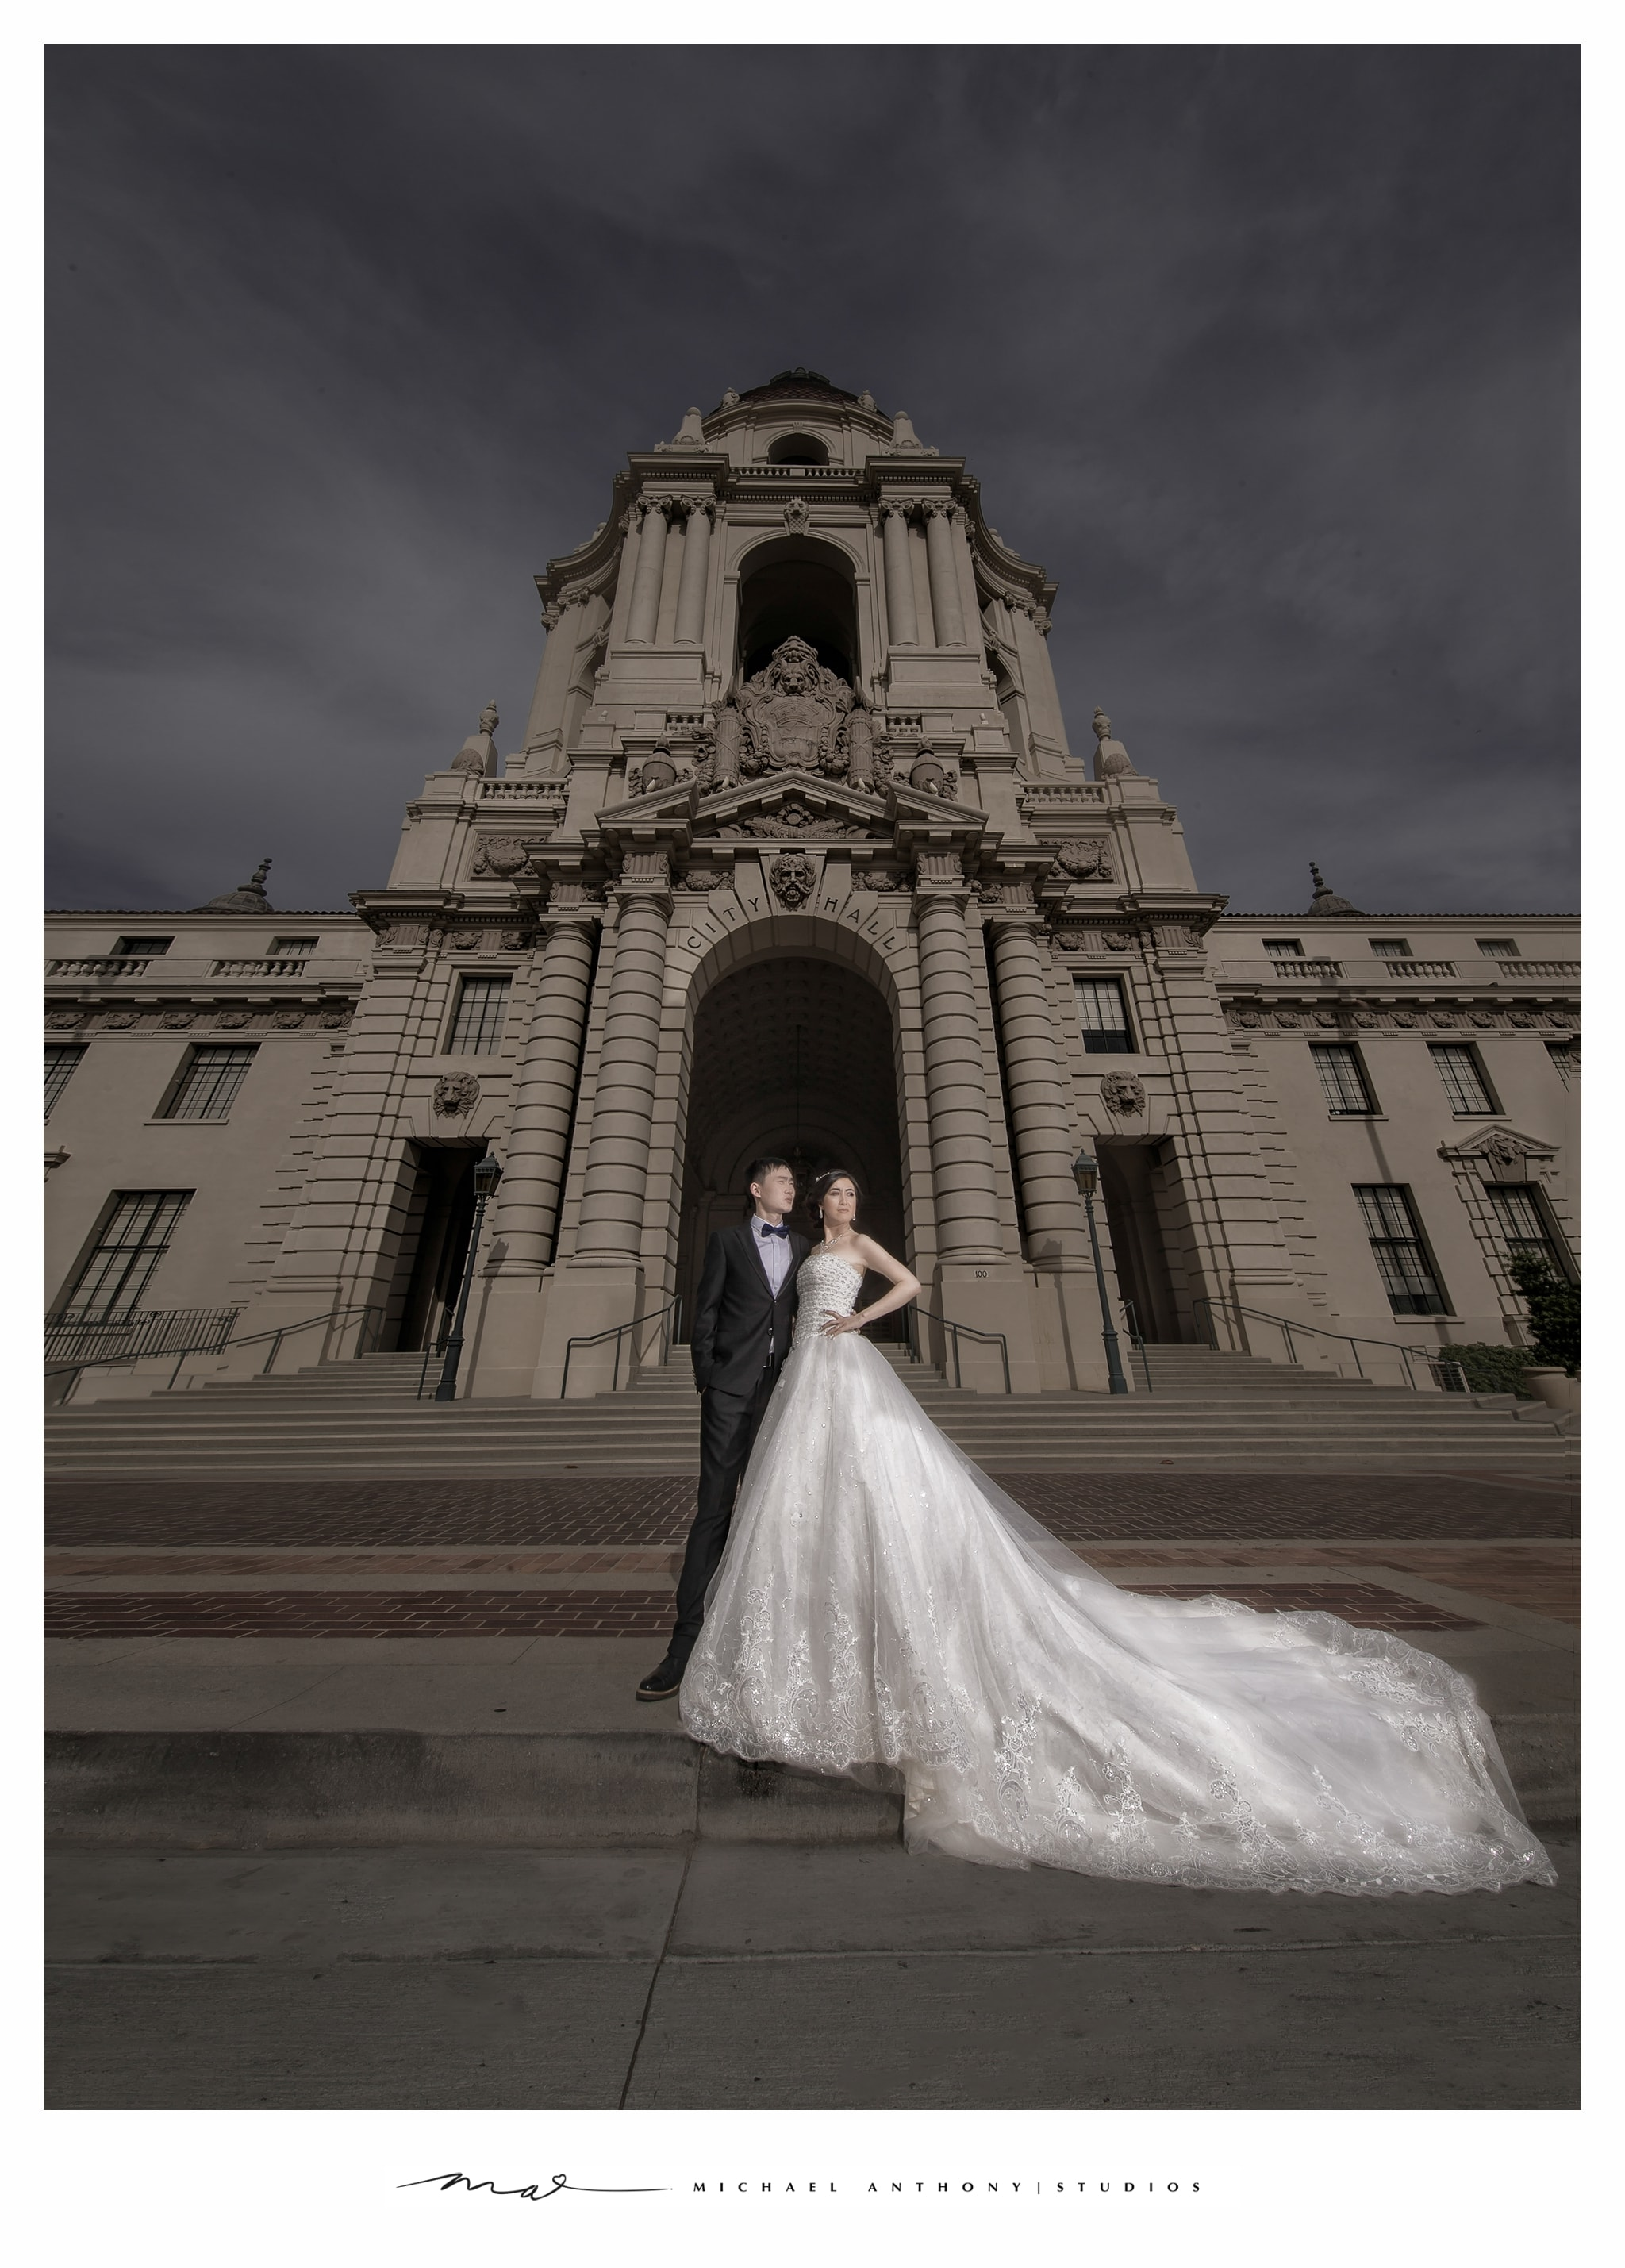 Los Angeles Pre Wedding Photography at Pasadena City Hall and Griffith Park Observatory